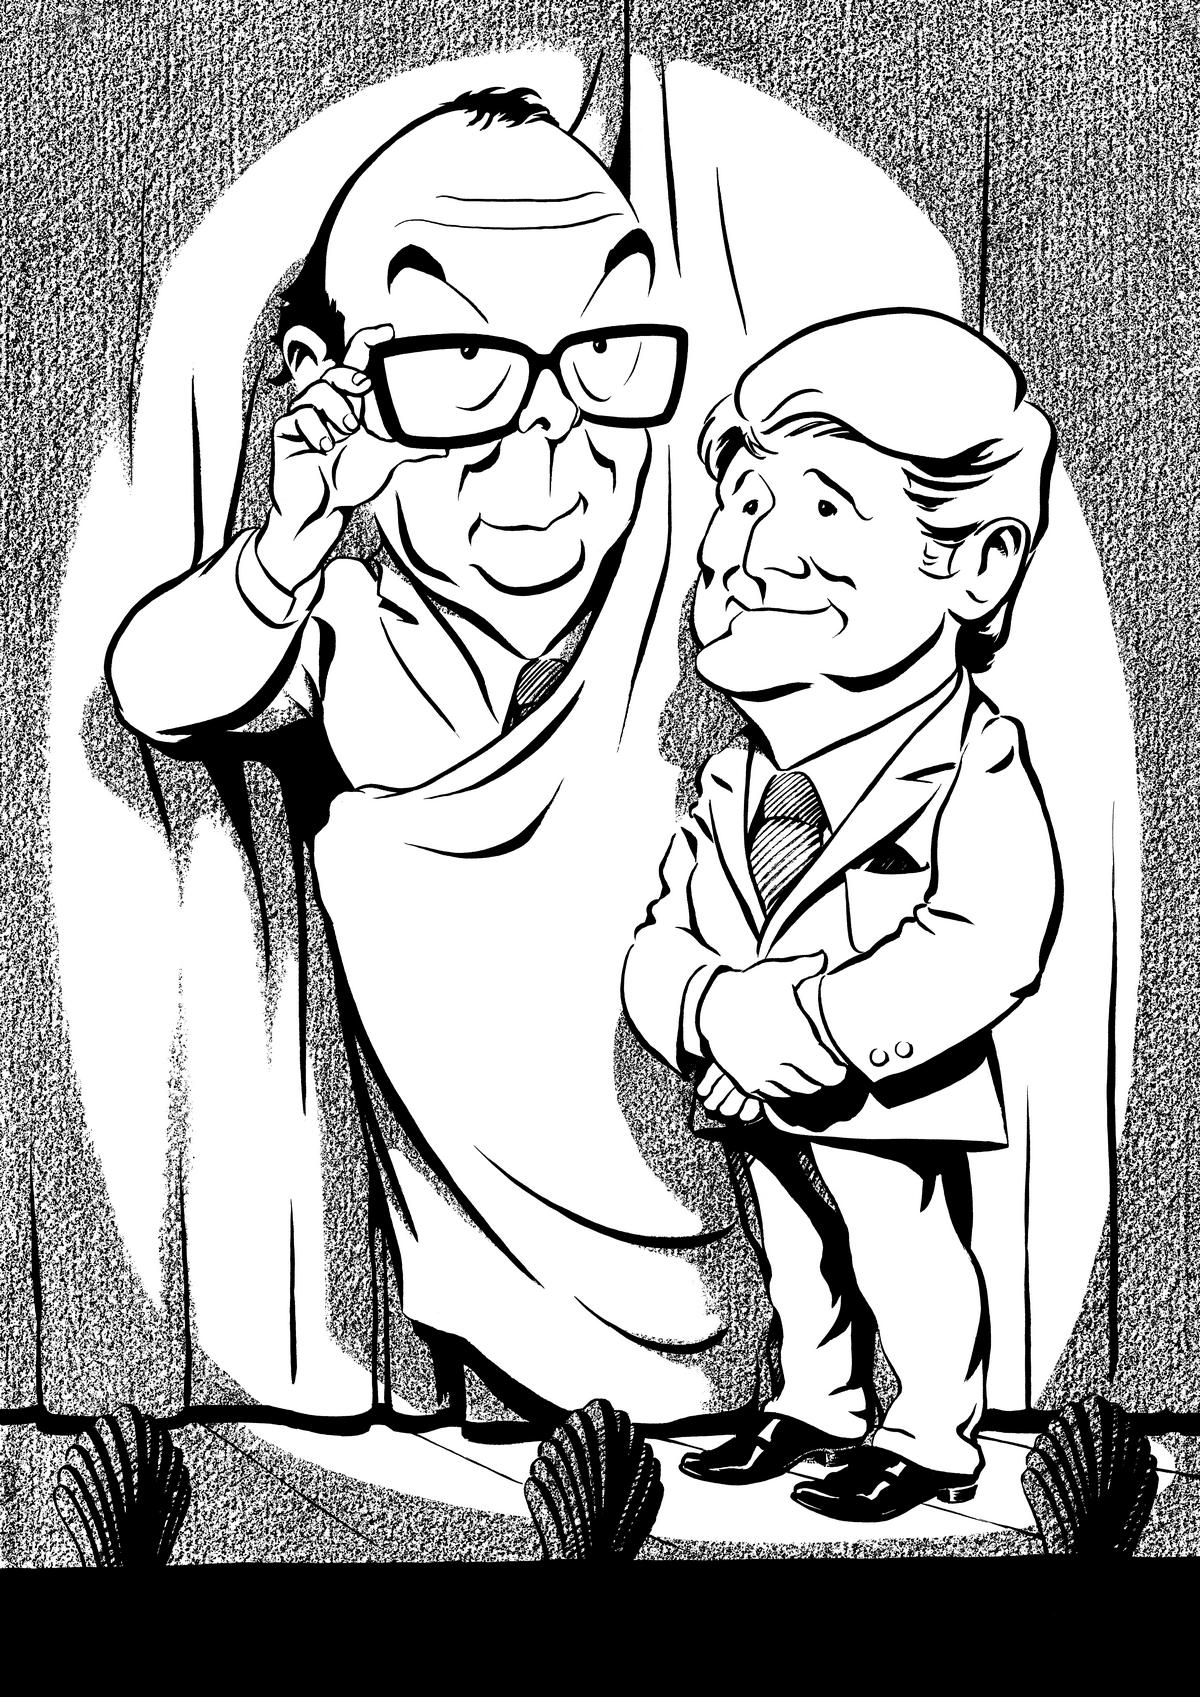 Morecambe and Wise caricature